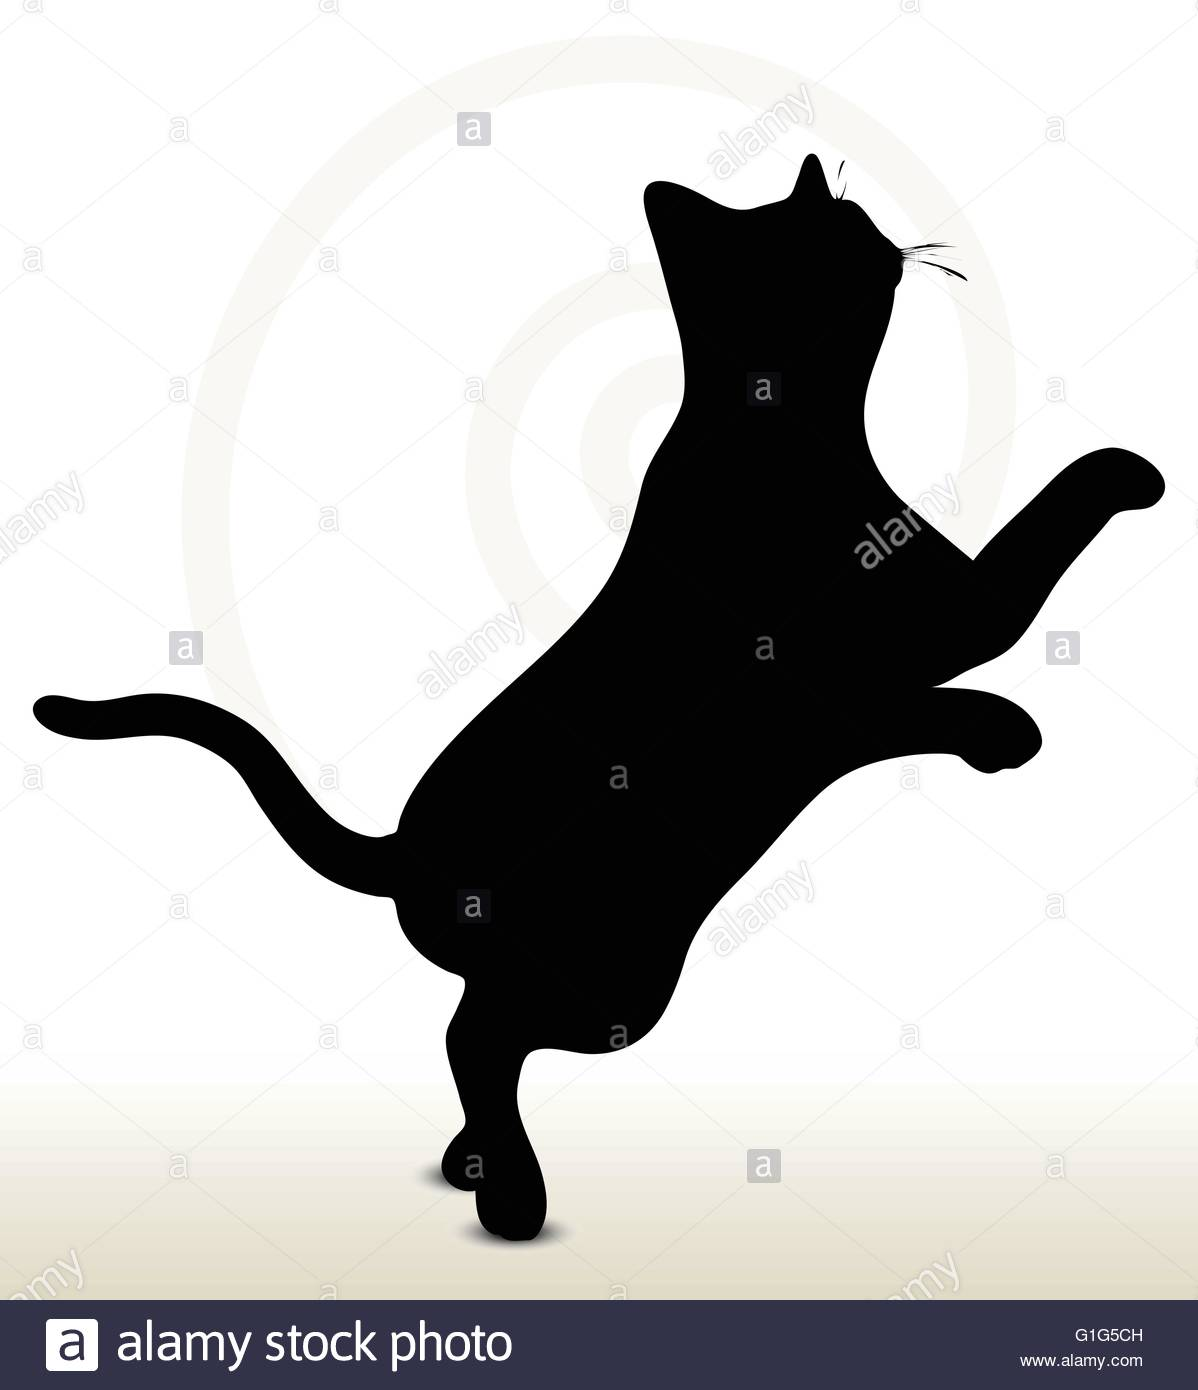 1198x1390 Cat Jumping Stock Vector Images